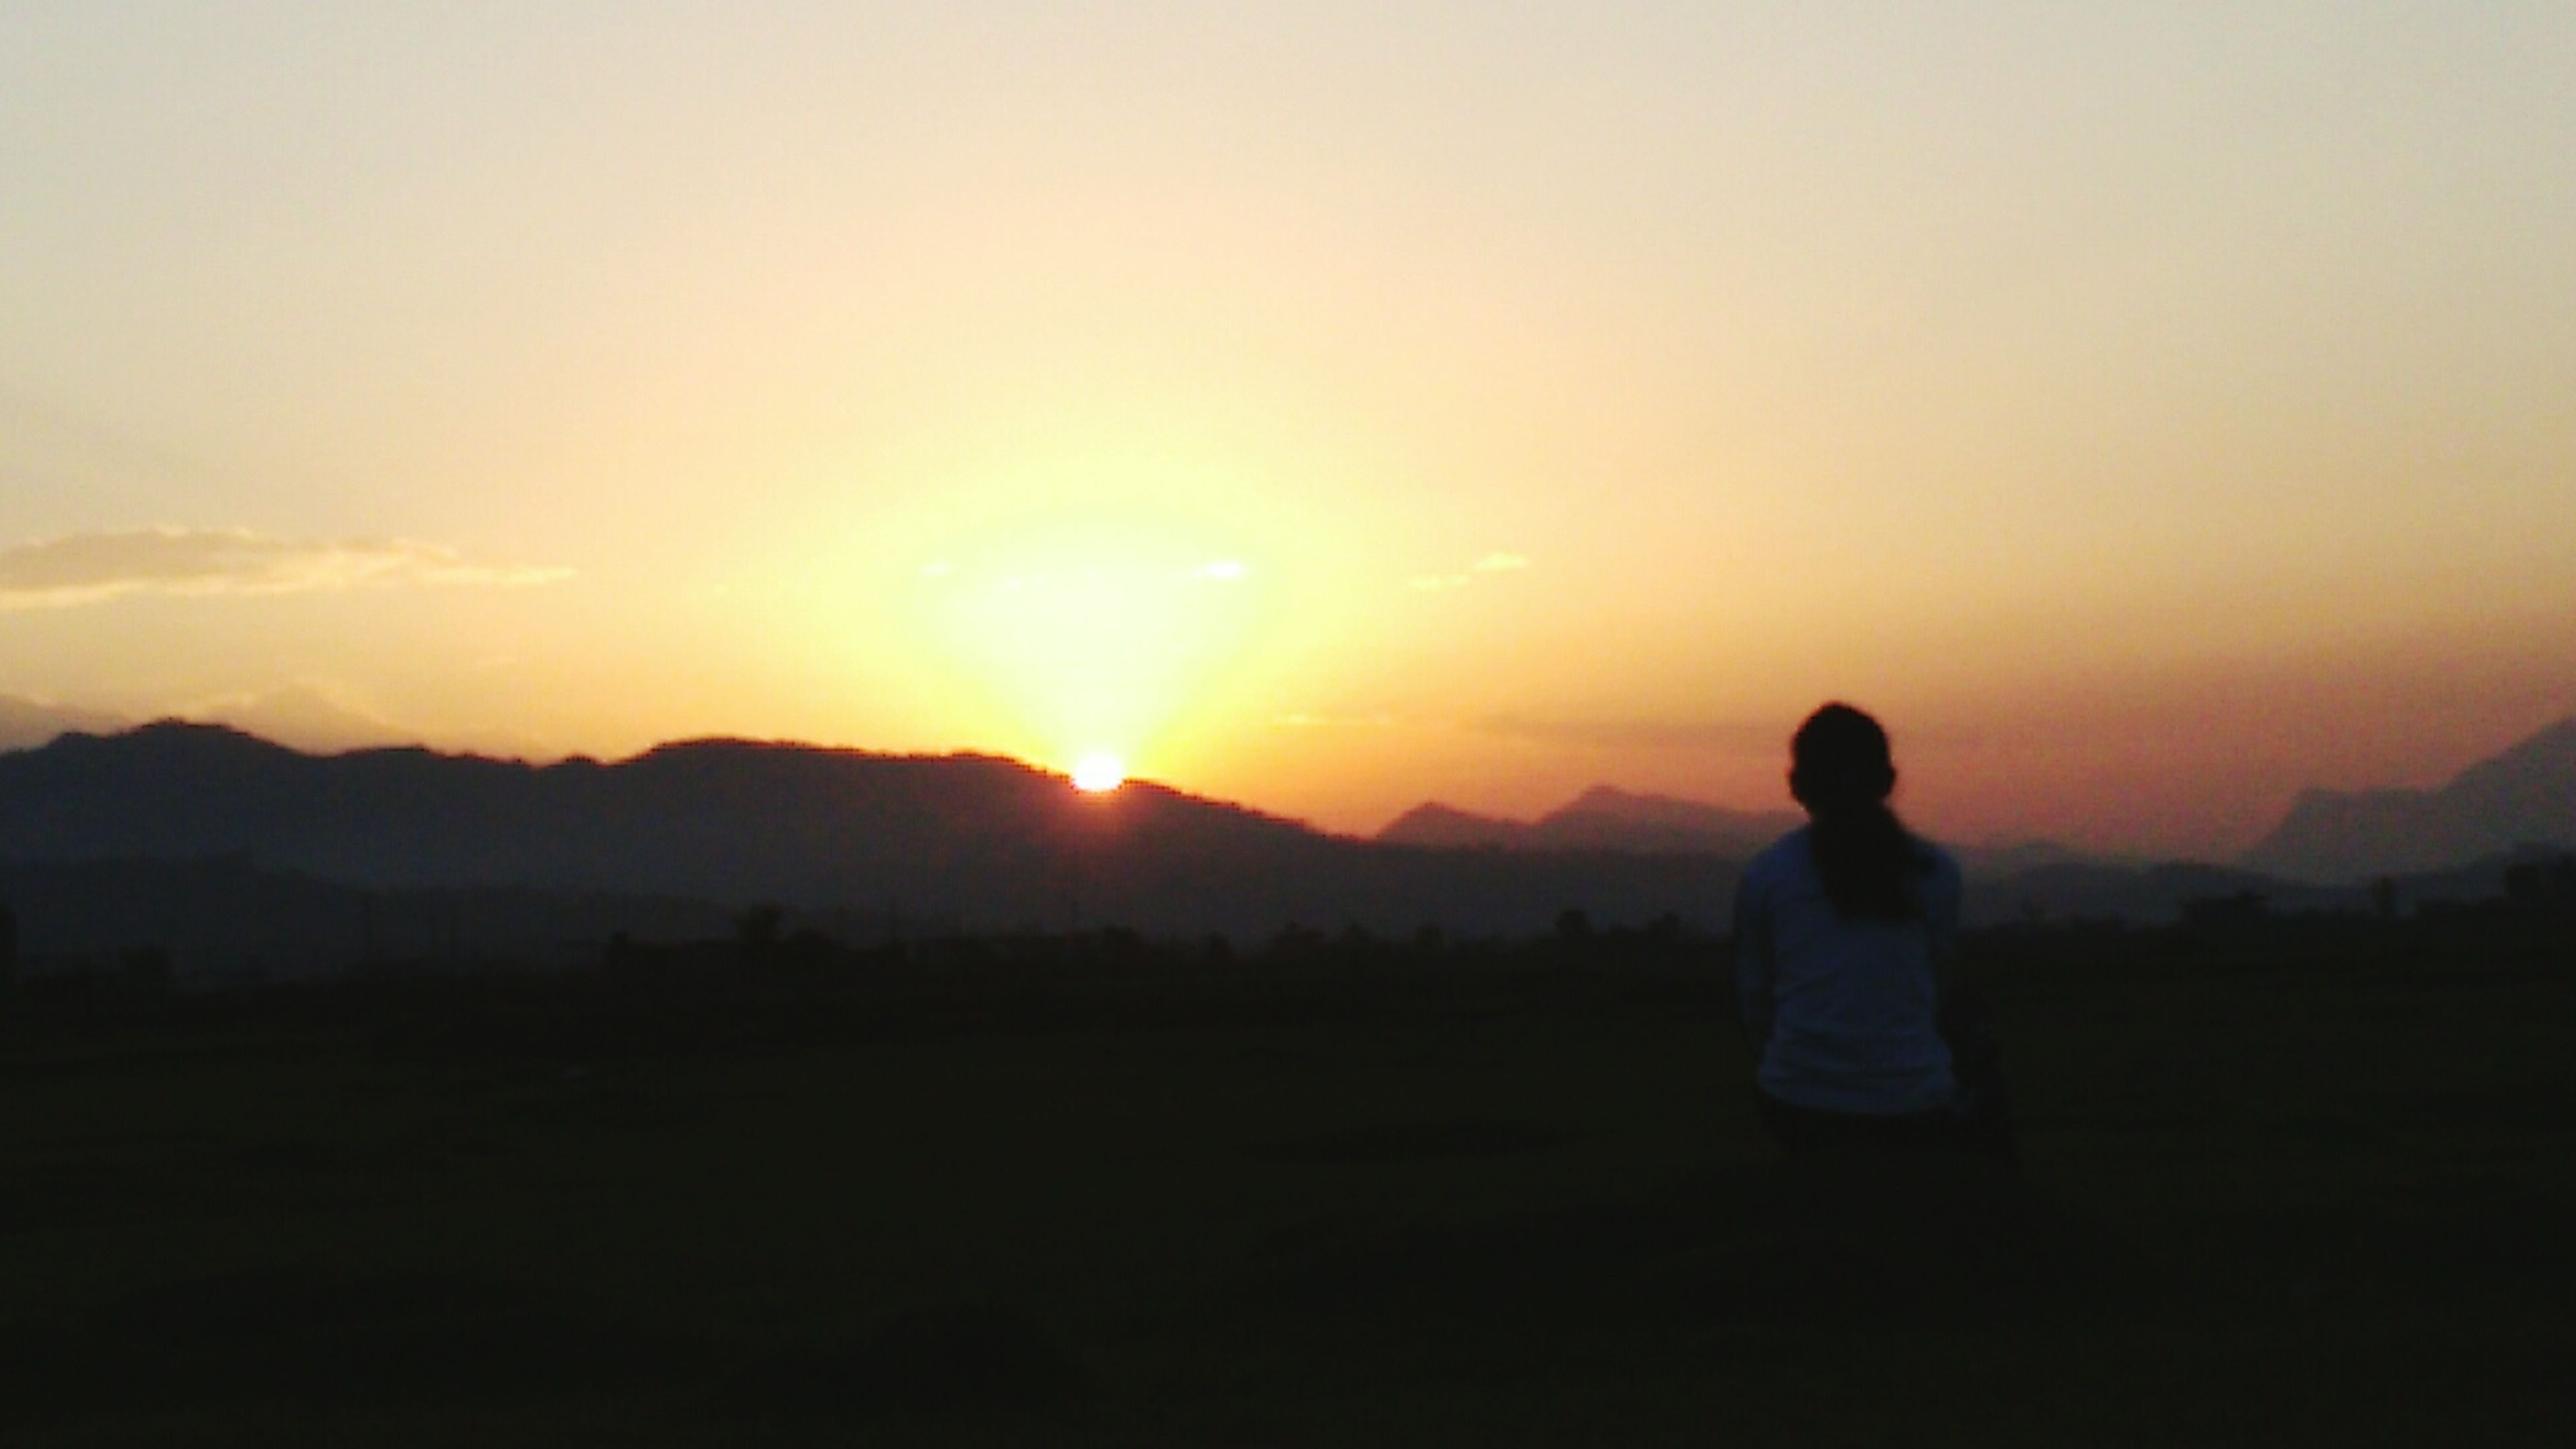 sunset, silhouette, scenics, sun, tranquil scene, beauty in nature, landscape, tranquility, orange color, sky, mountain, nature, lifestyles, standing, copy space, idyllic, leisure activity, rear view